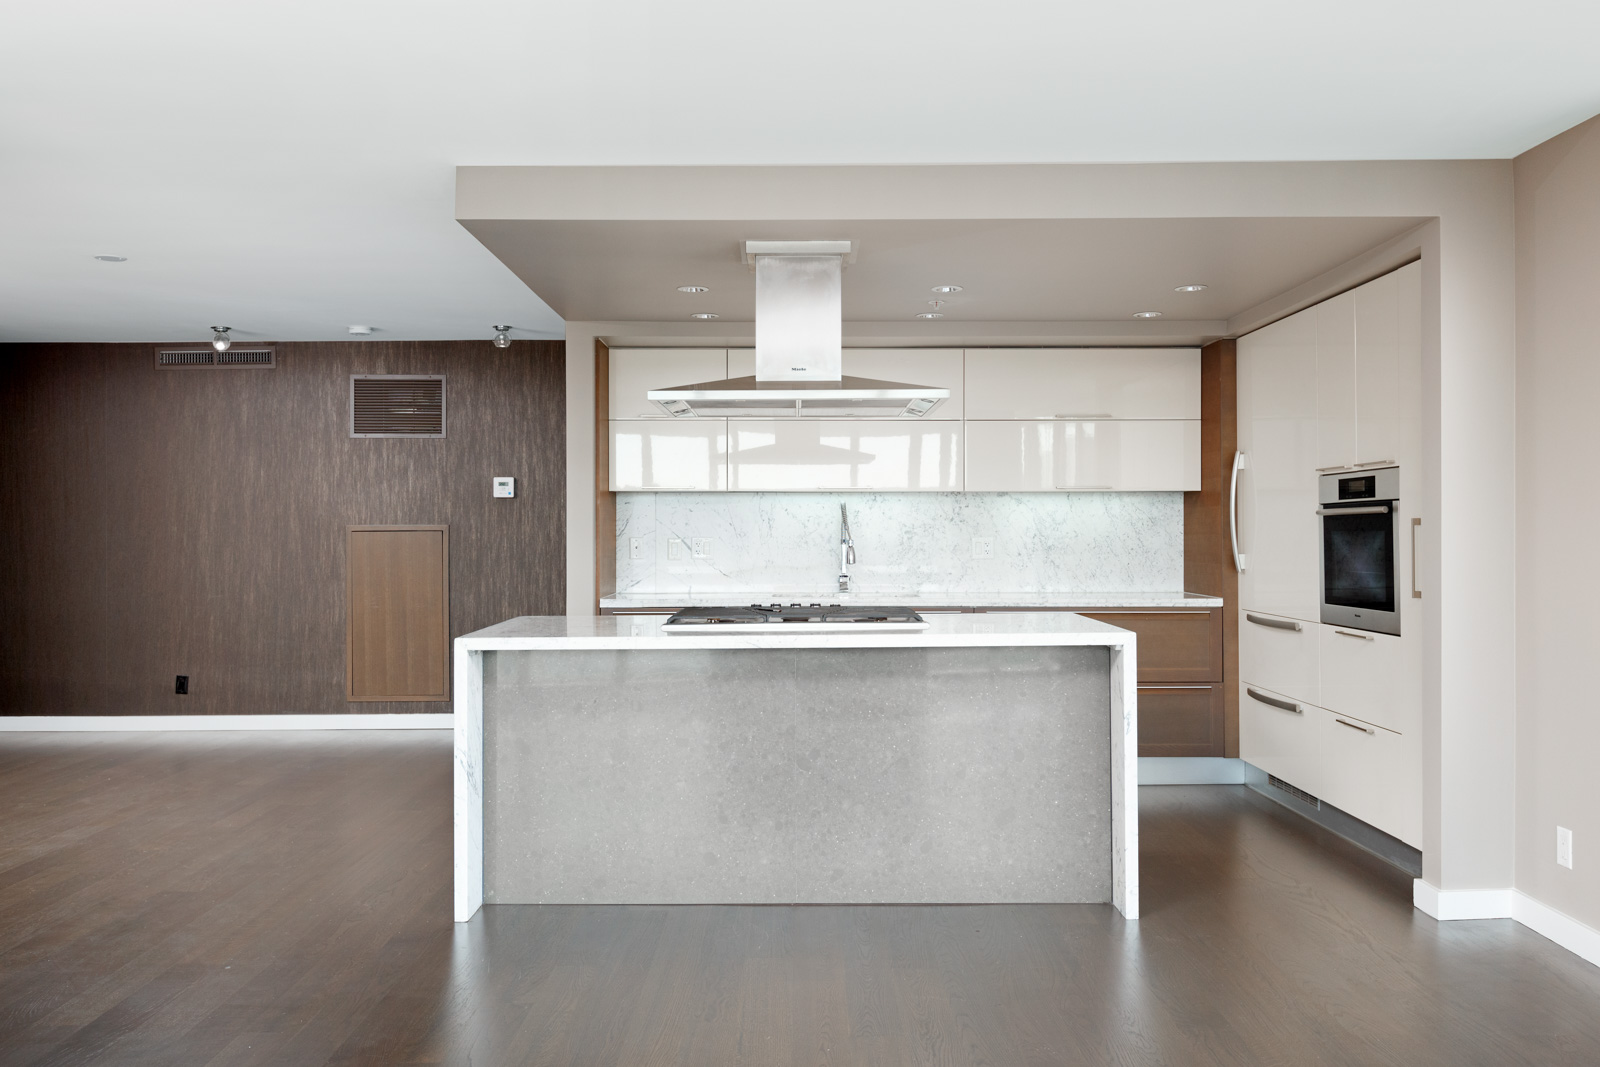 Marble kitchen island inside luxury Vancouver rental condo.